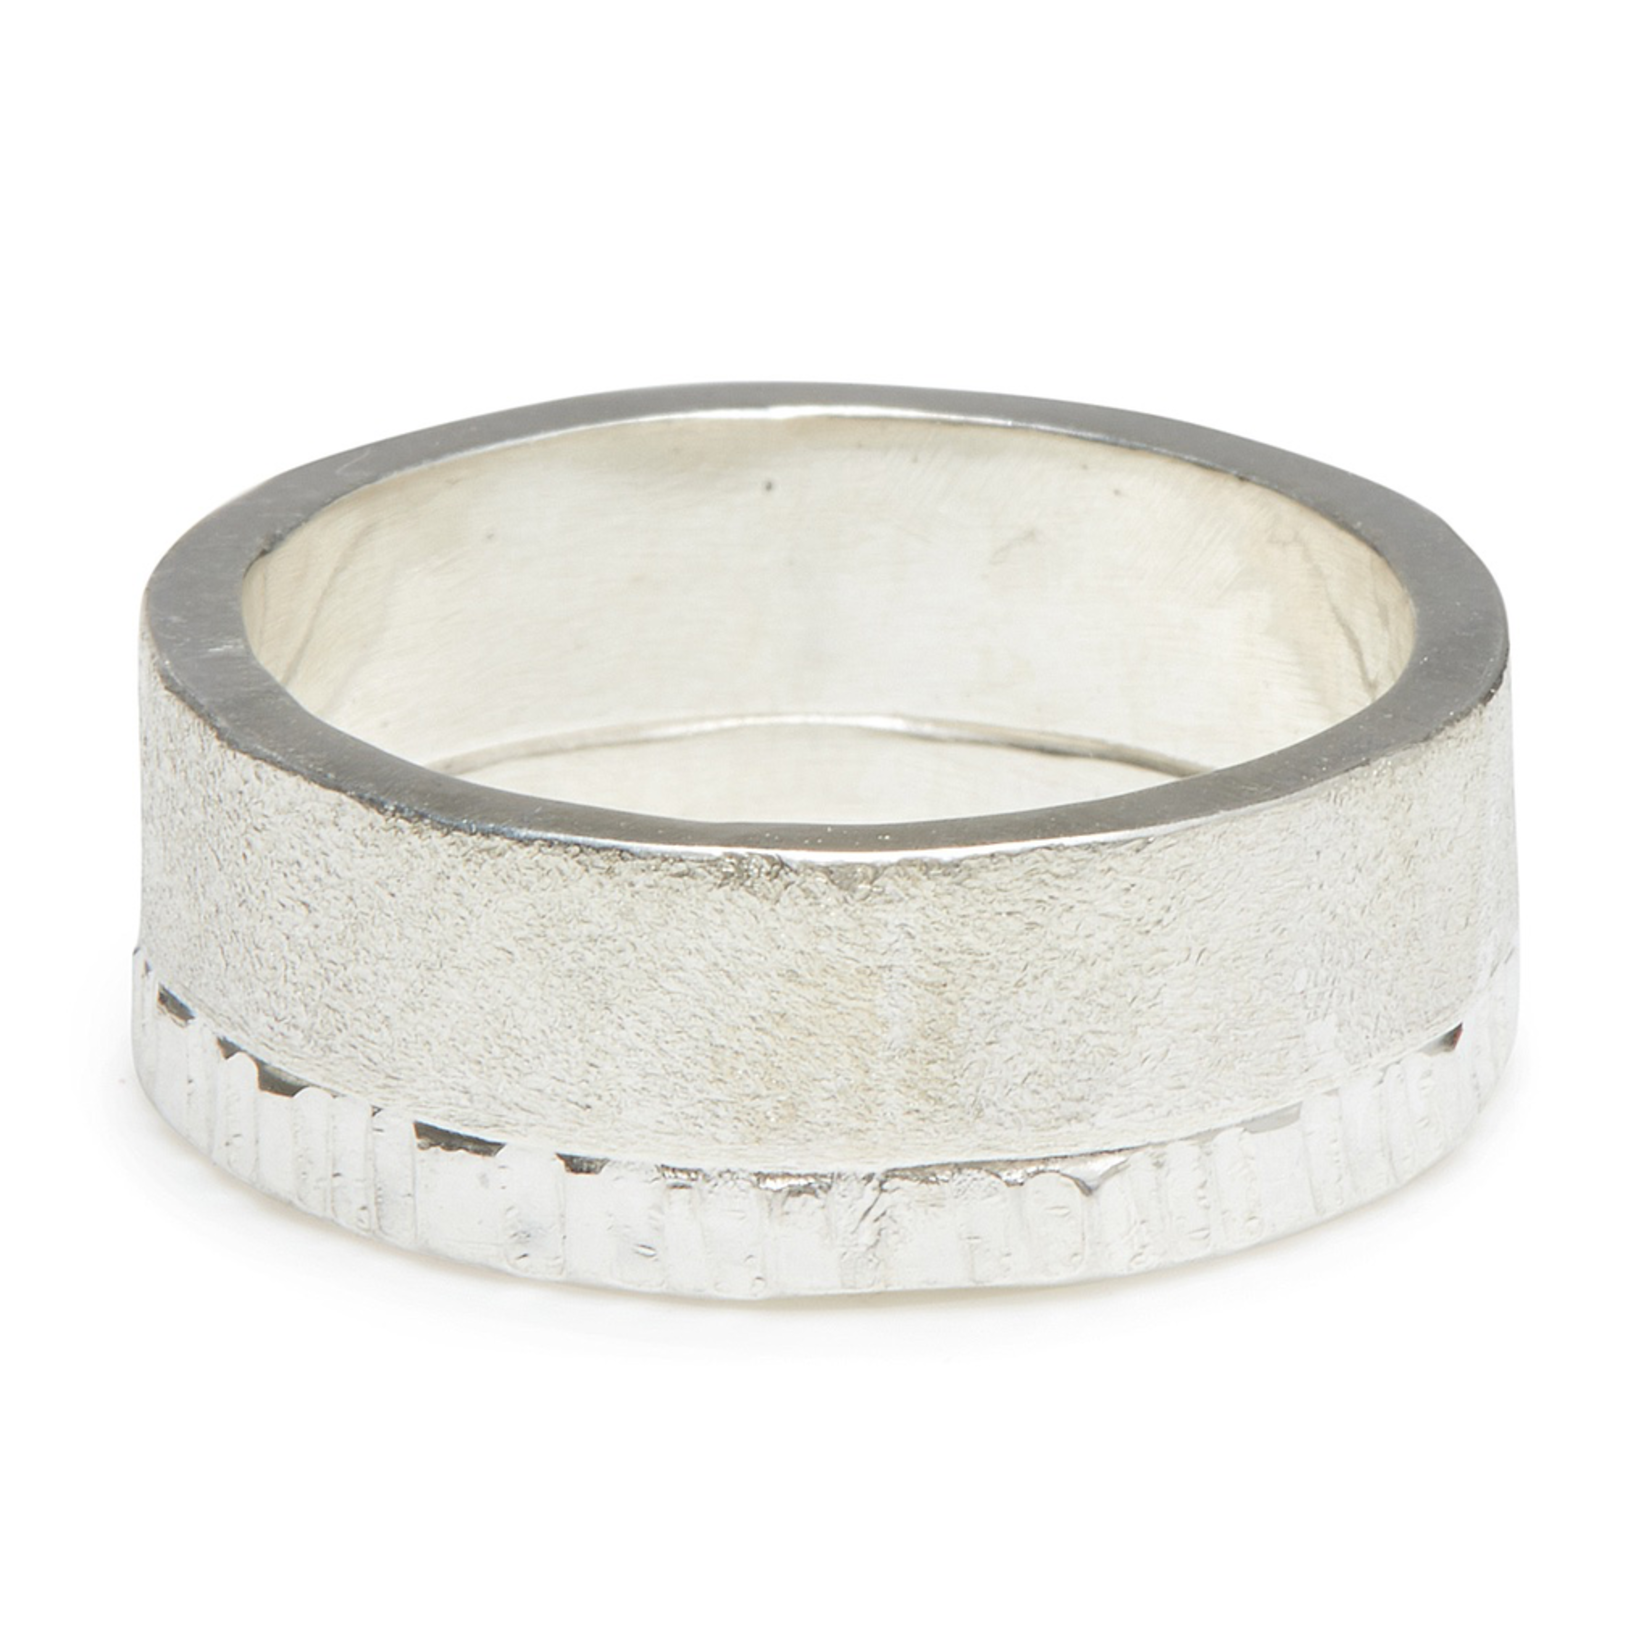 Handmade Textured Sterling Silver Ring